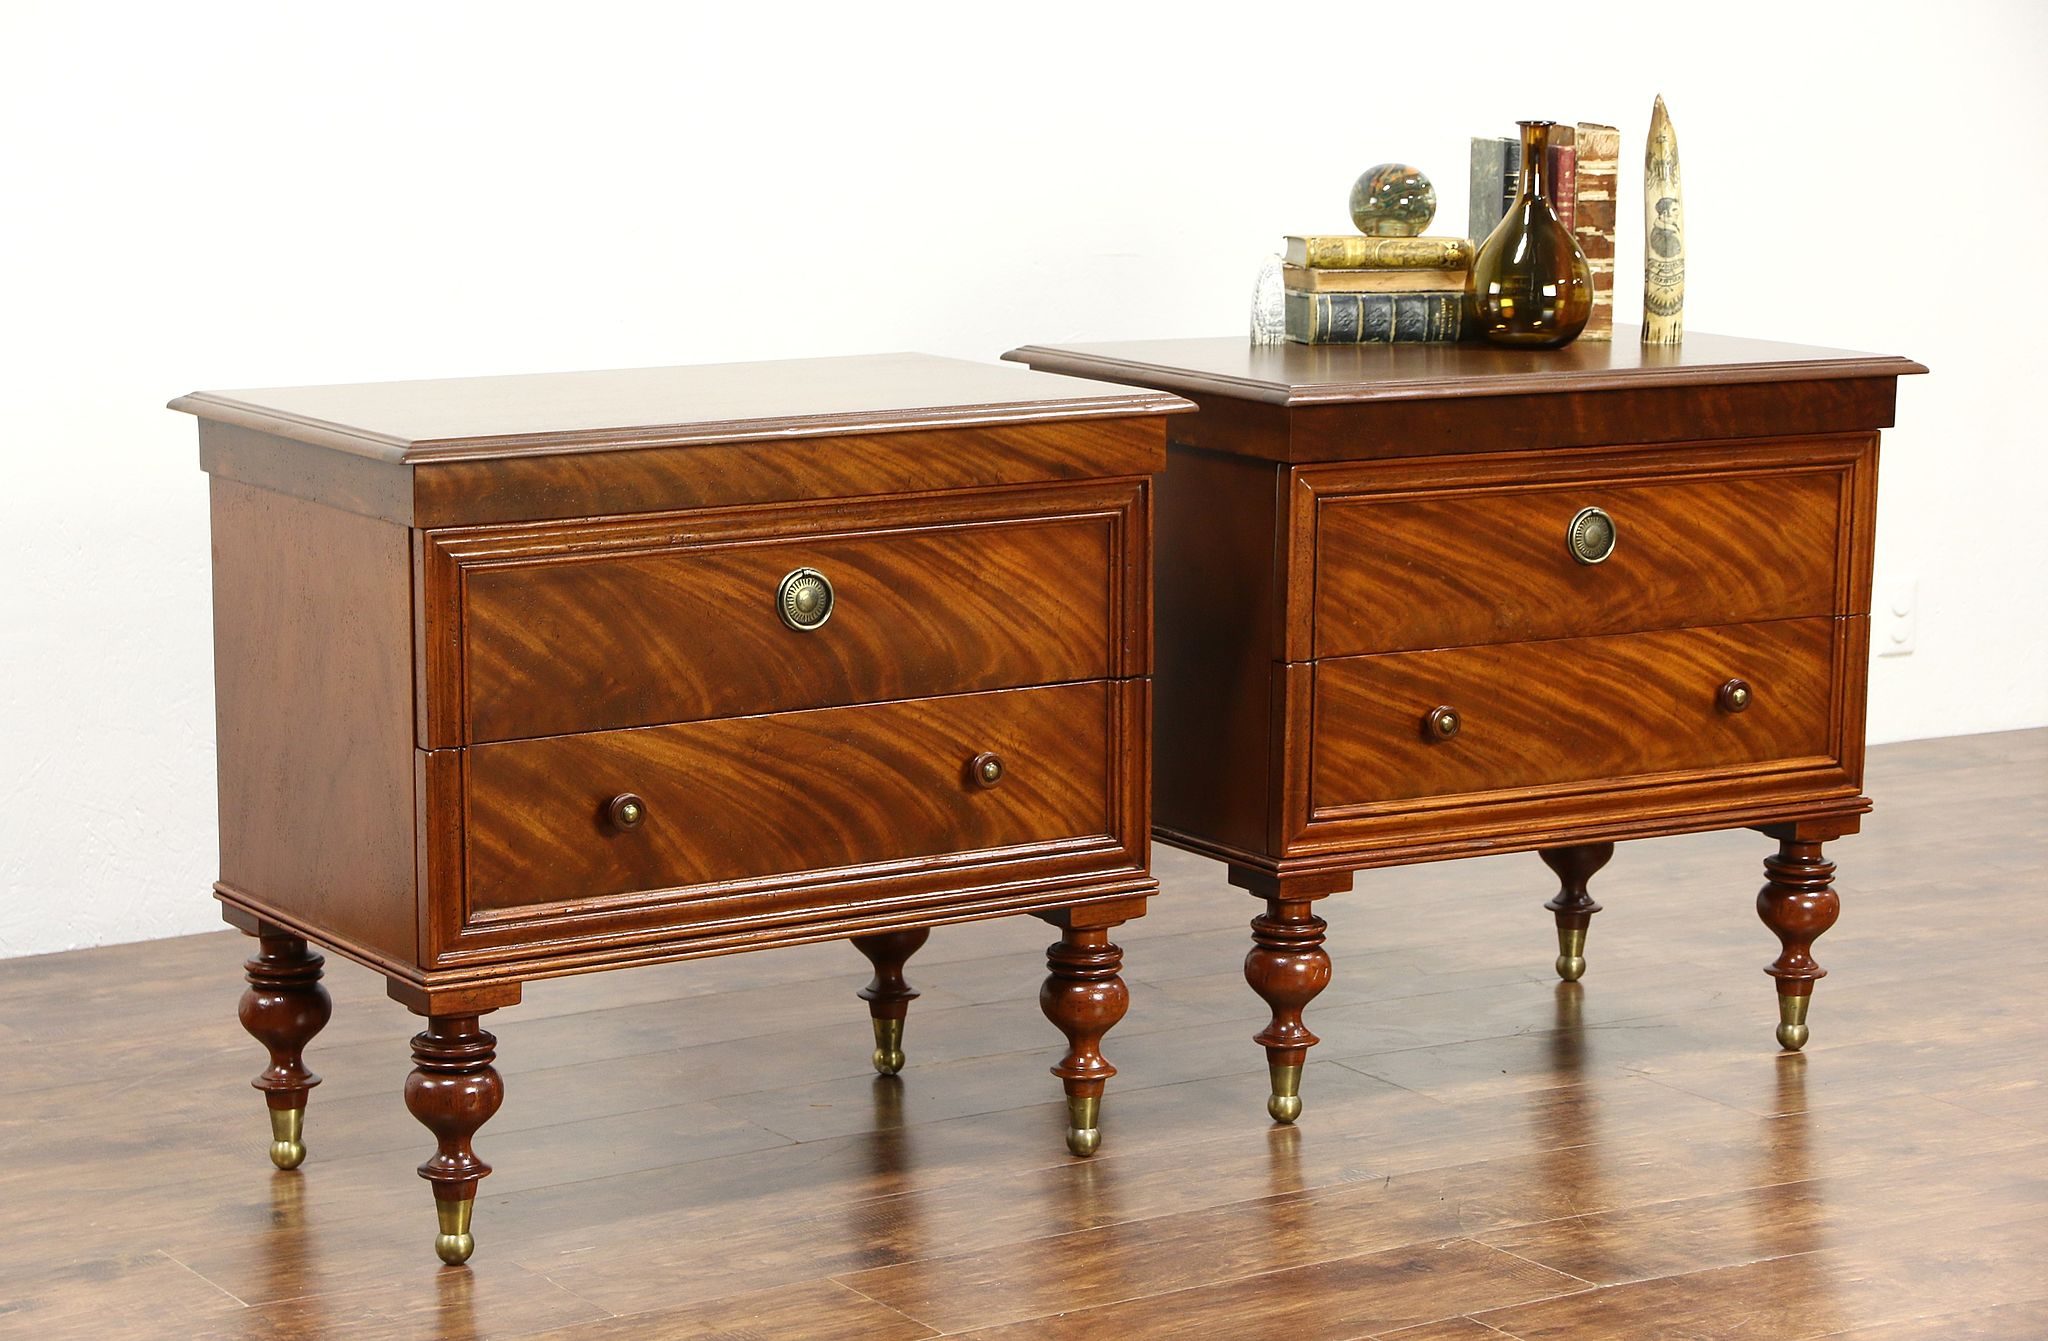 Pair Of End Tables Or Nightstands Milling Road By Baker West Ins Collection